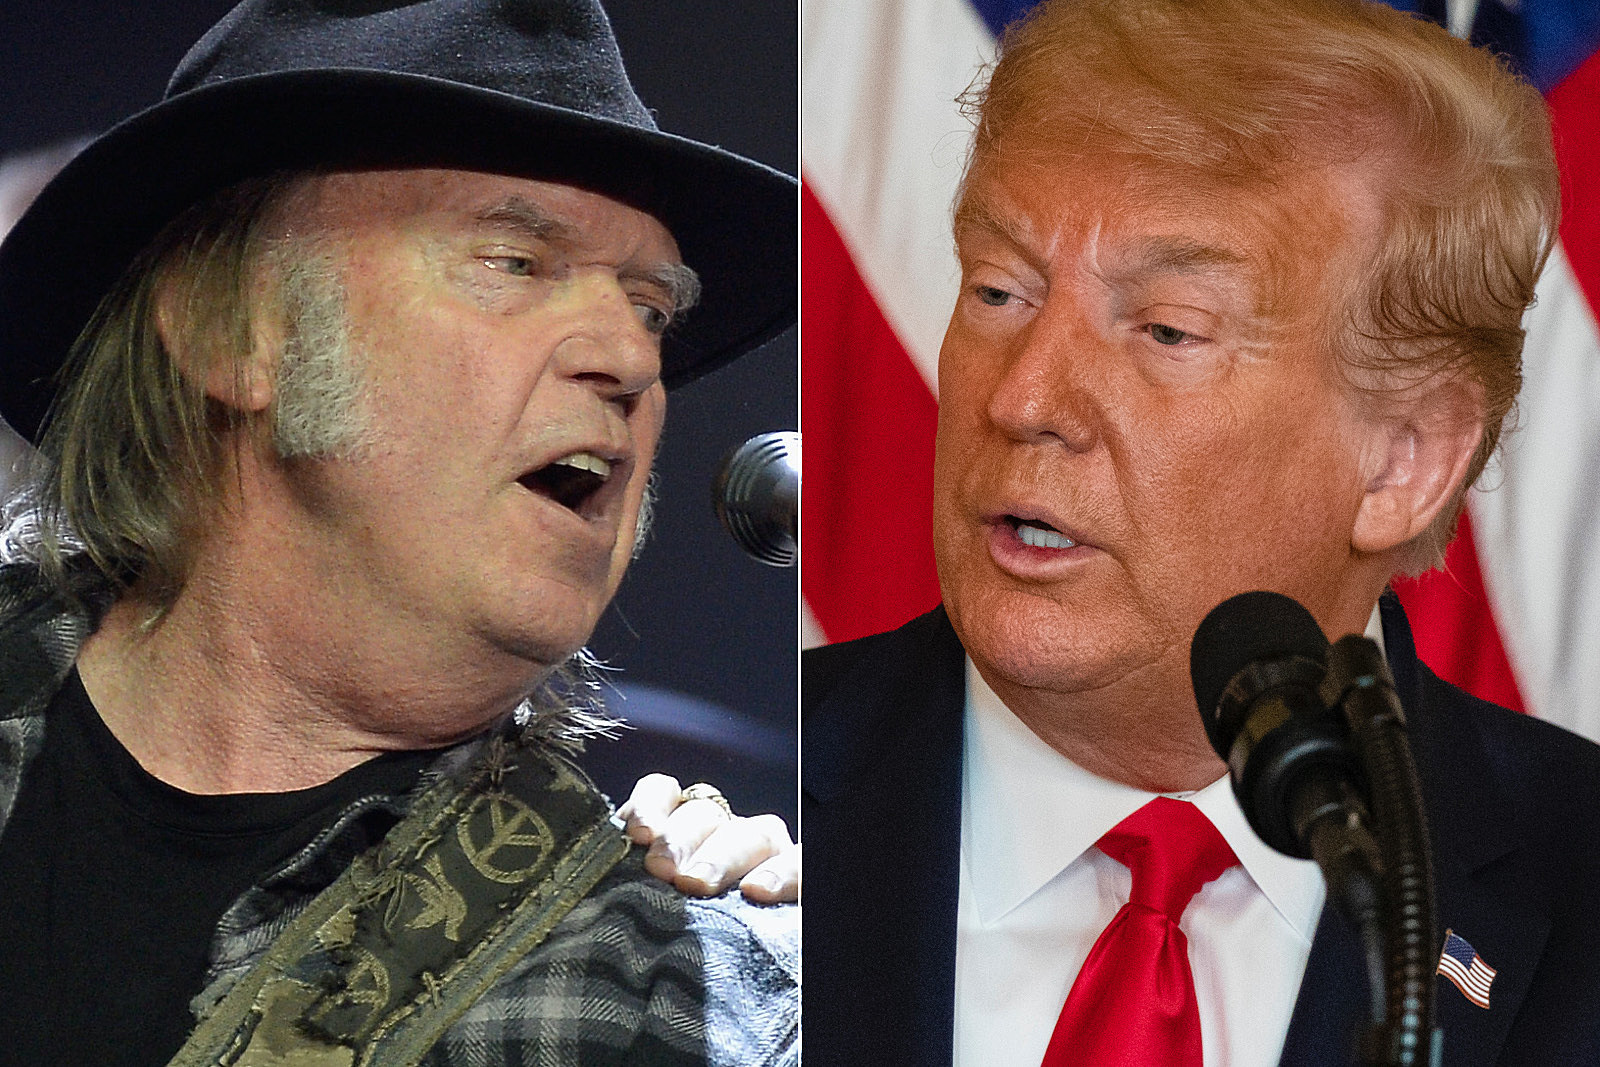 Neil Young Sues to Stop Donald Trump From Playing His Songs